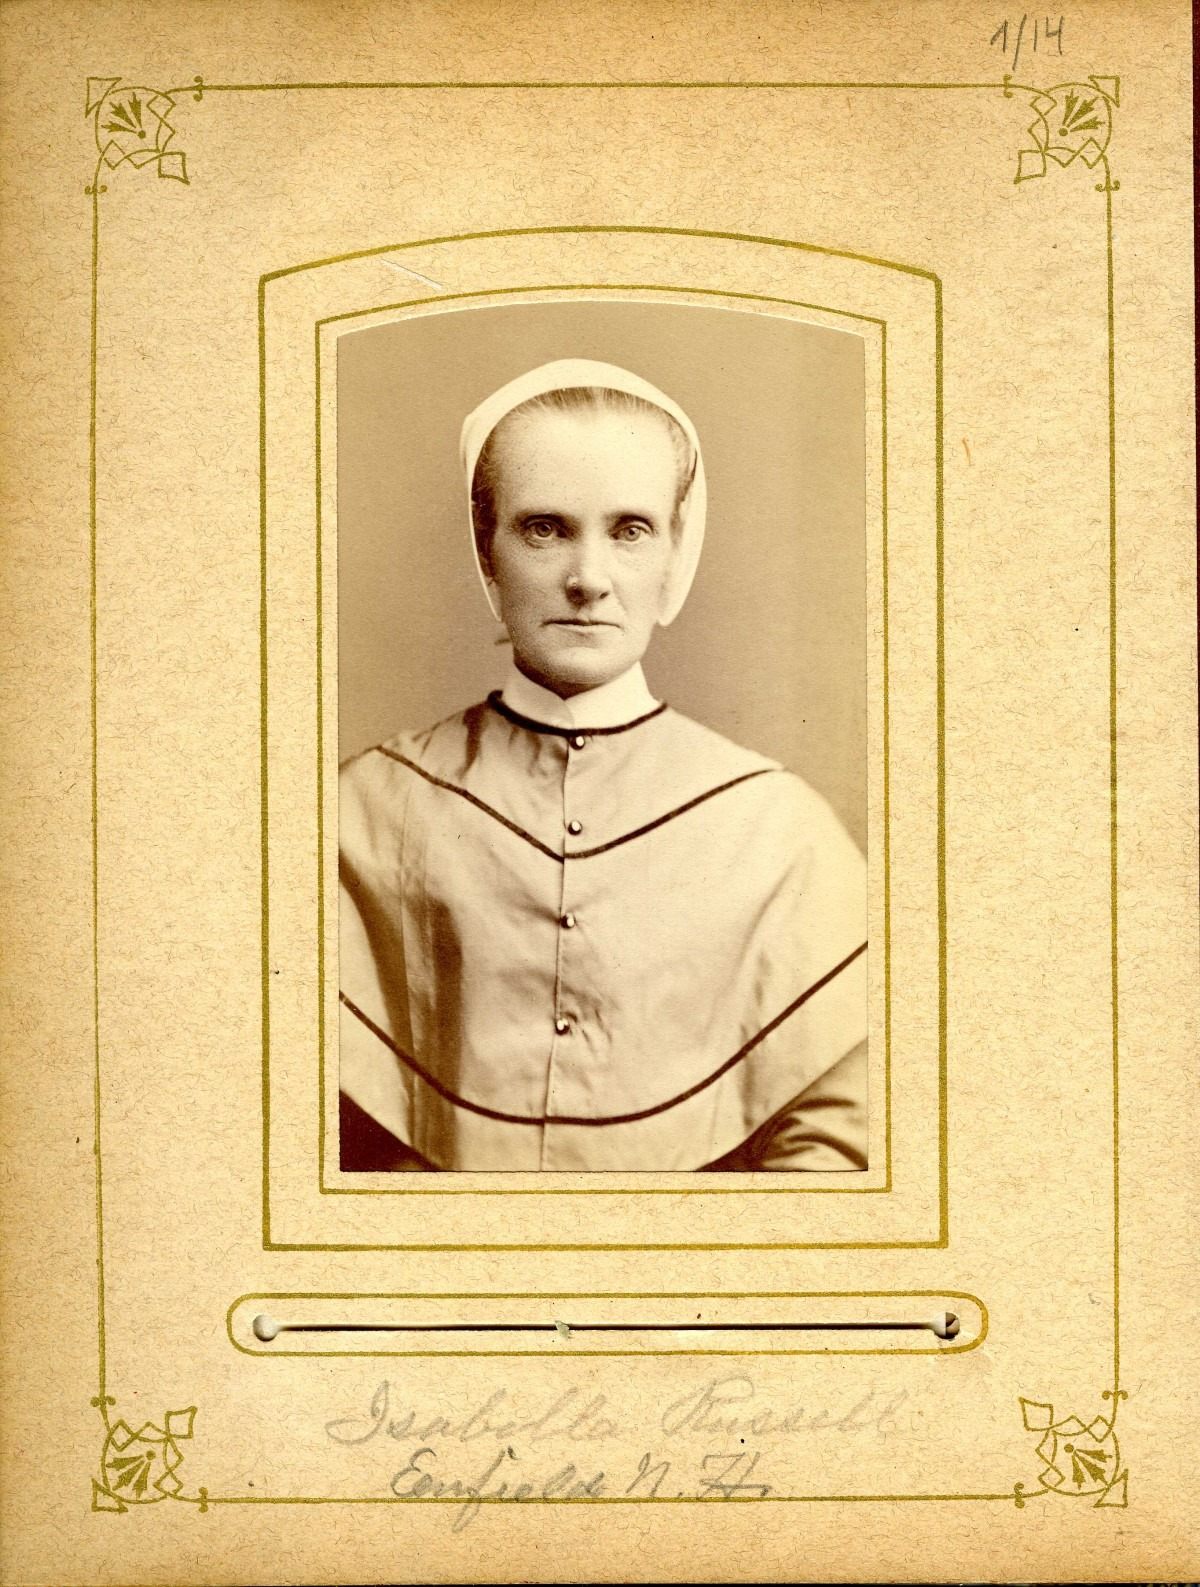 Sister Isabella M. Russell, Enfield, NH